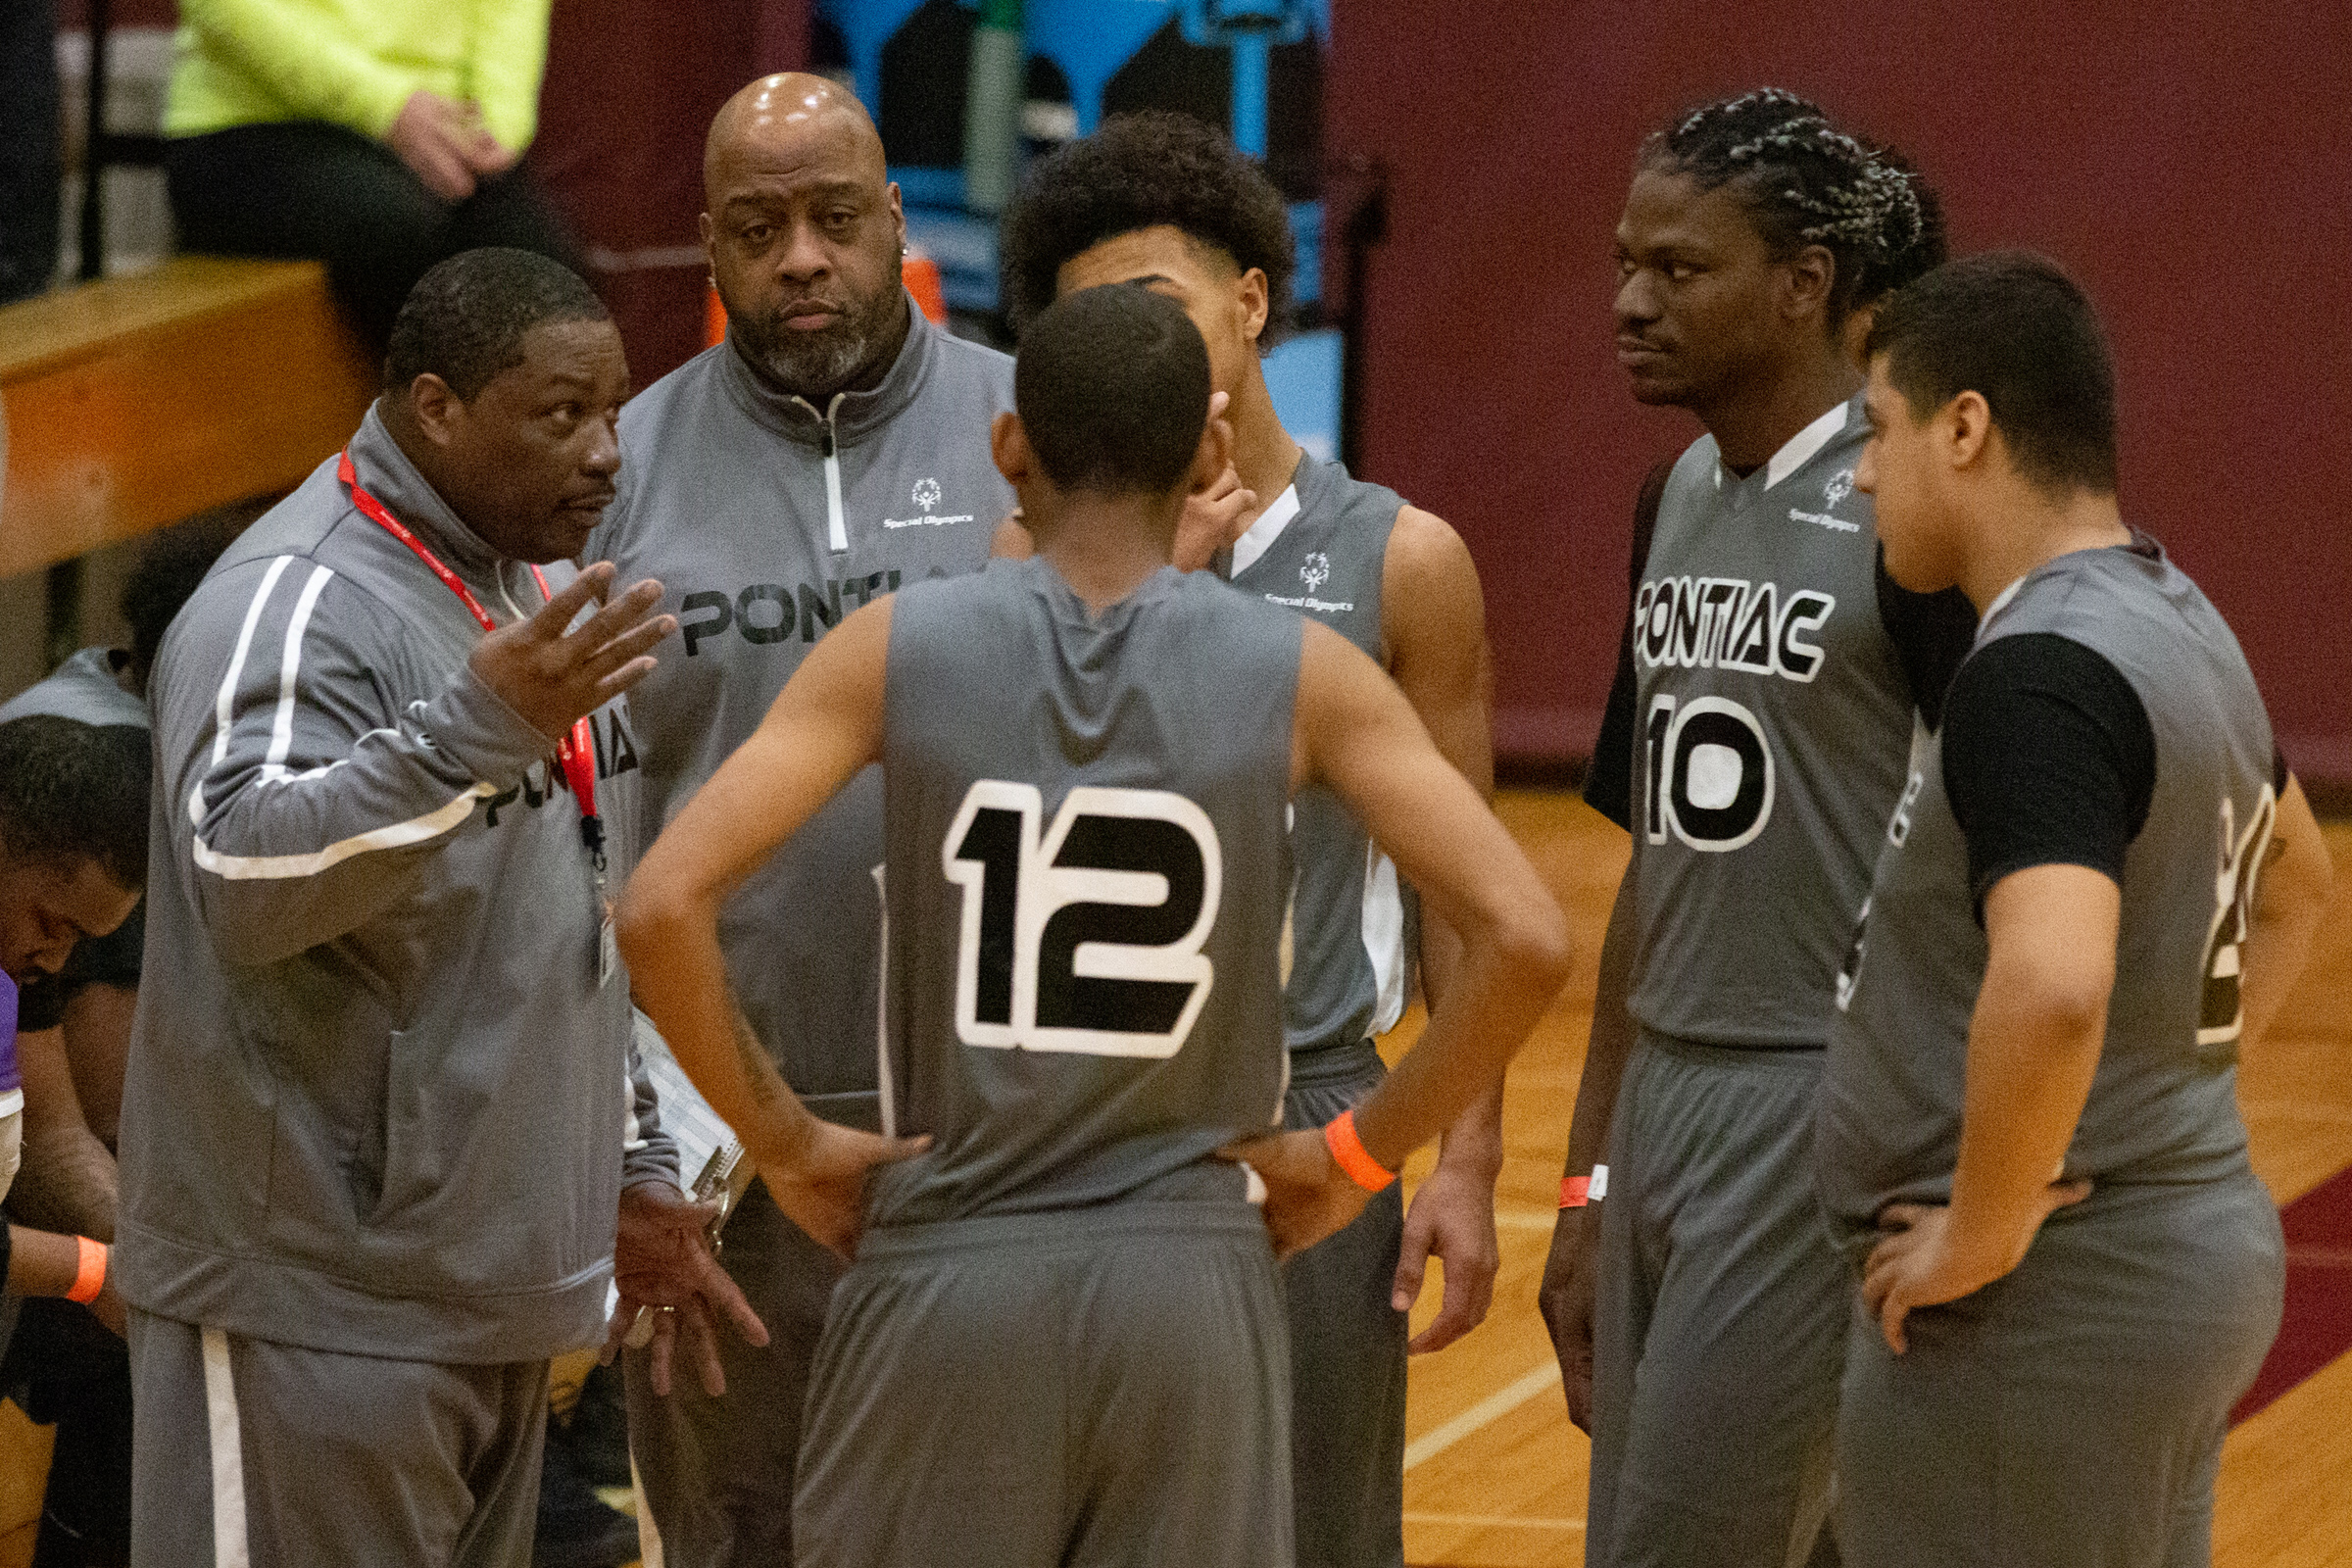 A basketball team huddles around its coaches during a timeout.